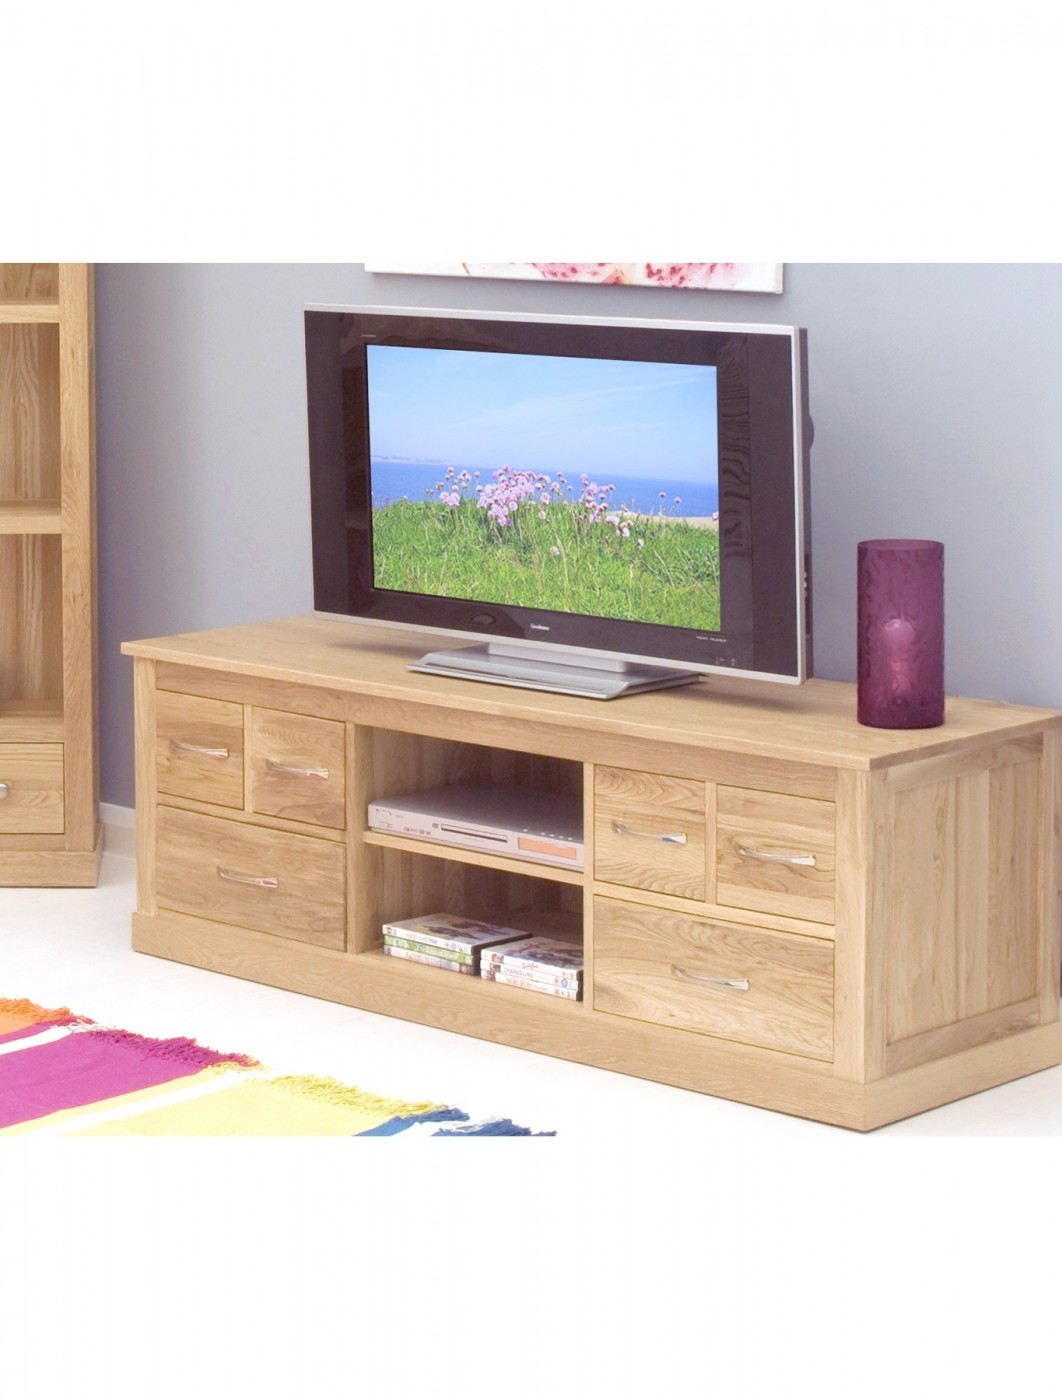 Baumhaus mobel oak widescreen tv cabinet cor09b 121 tv for Mobel asia style